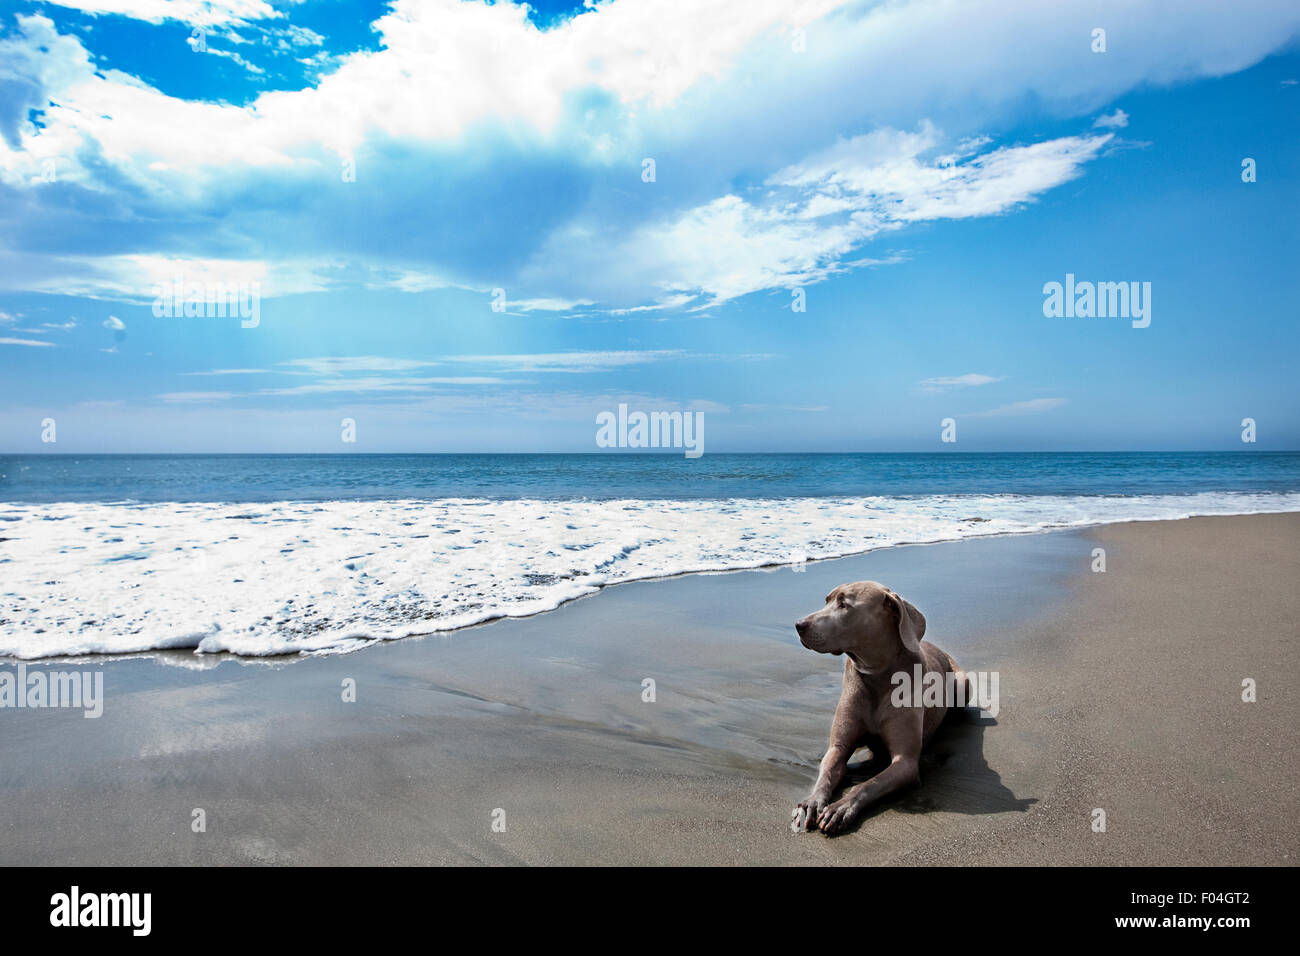 A majestic landscape of Weimaraner dog laying in hard packed sand at oceans edge with big blue sky white clouds - Stock Image